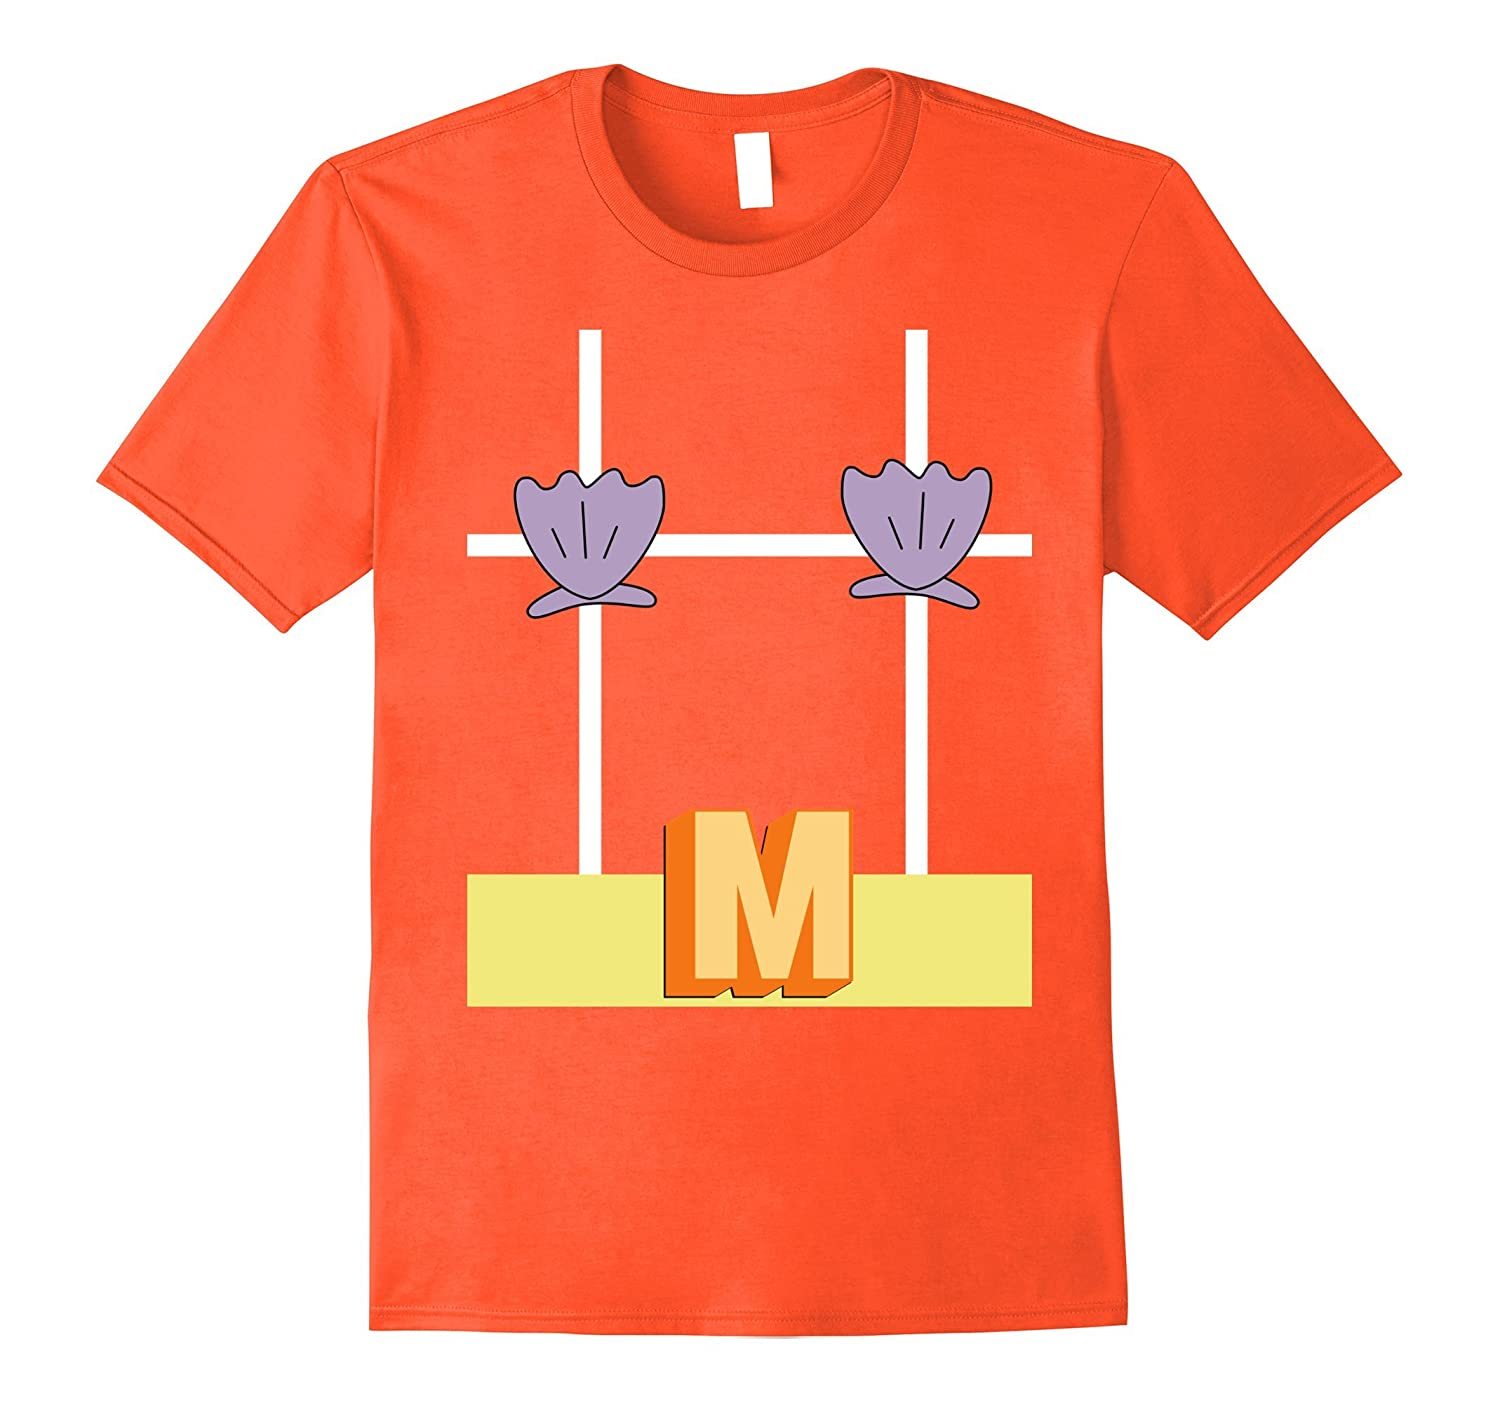 Mermaid Man Costume T-Shirt Halloween 2017-T-Shirt